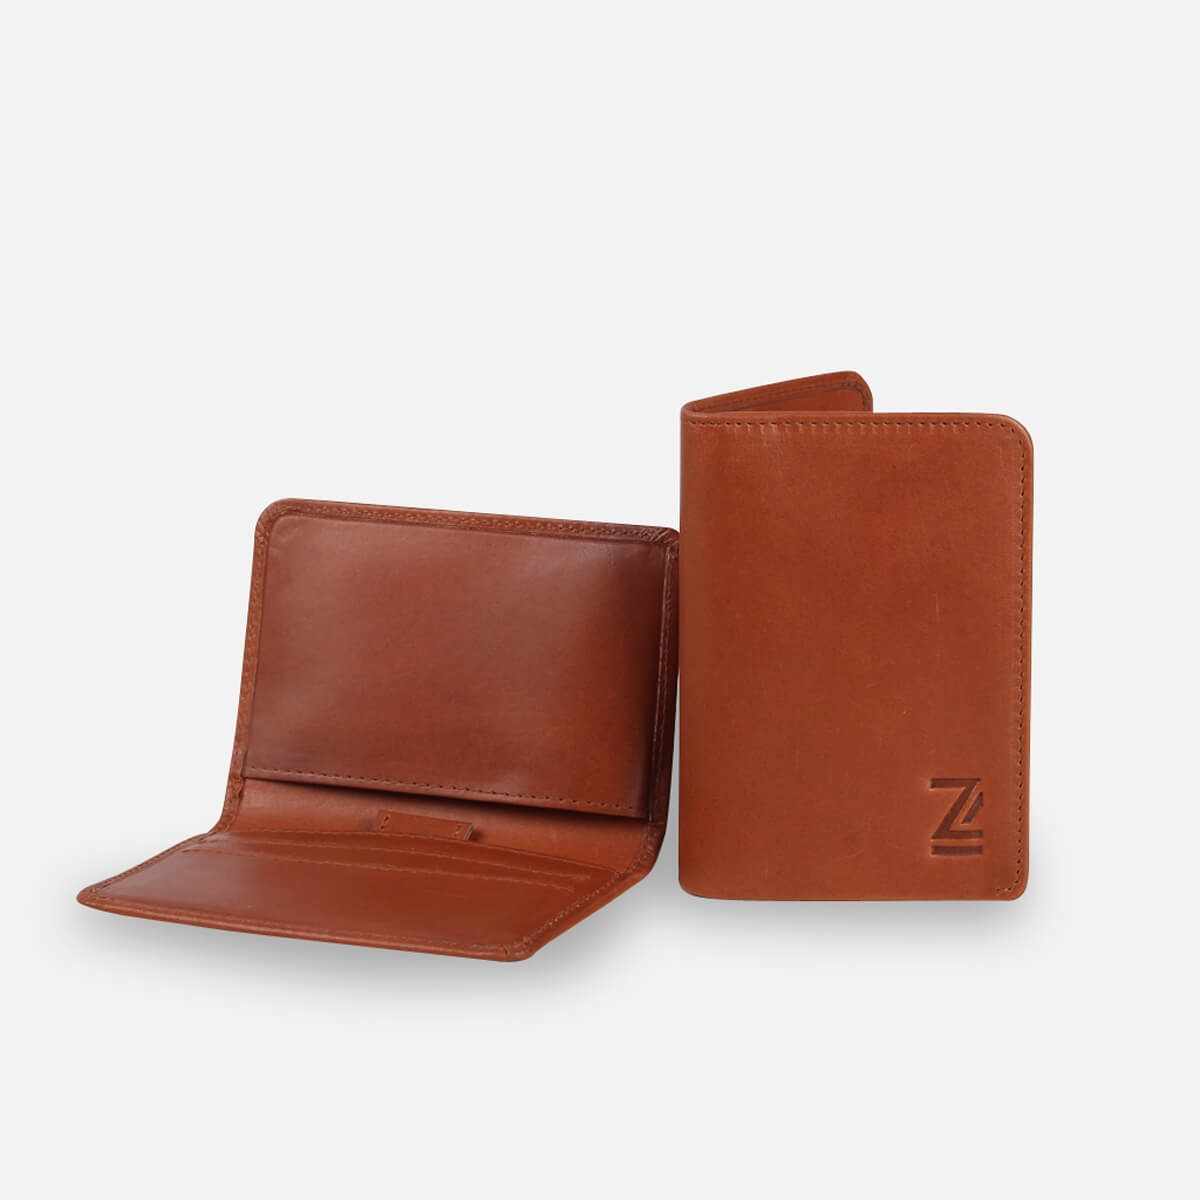 50b07a6ce07 Zoomlite Dash Leather Card Holder Wallet, Slimline RFID Protected